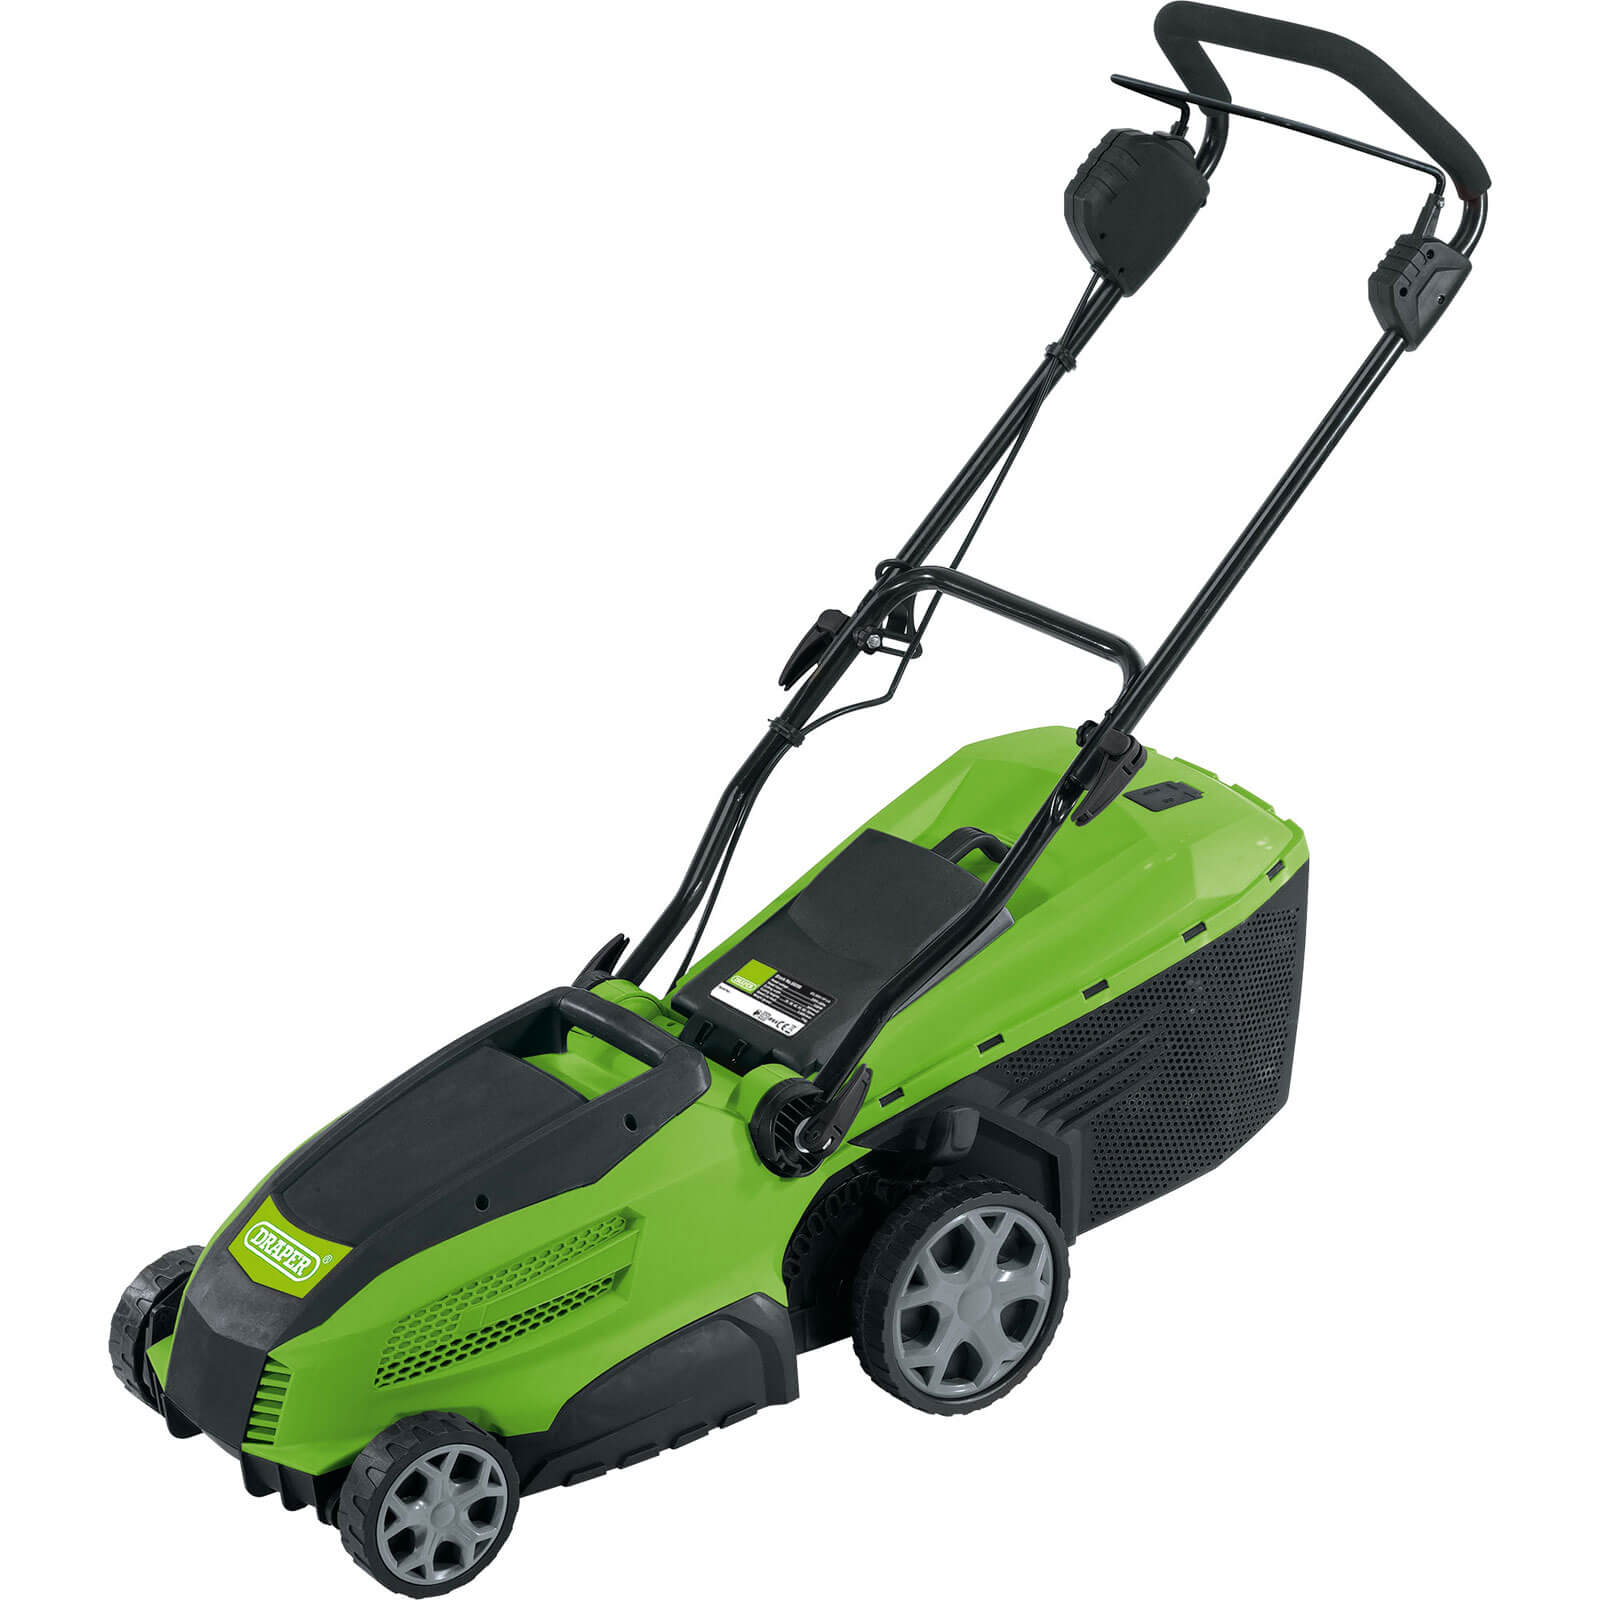 Image of Draper LM36 Rotary Lawnmower 360mm 240v